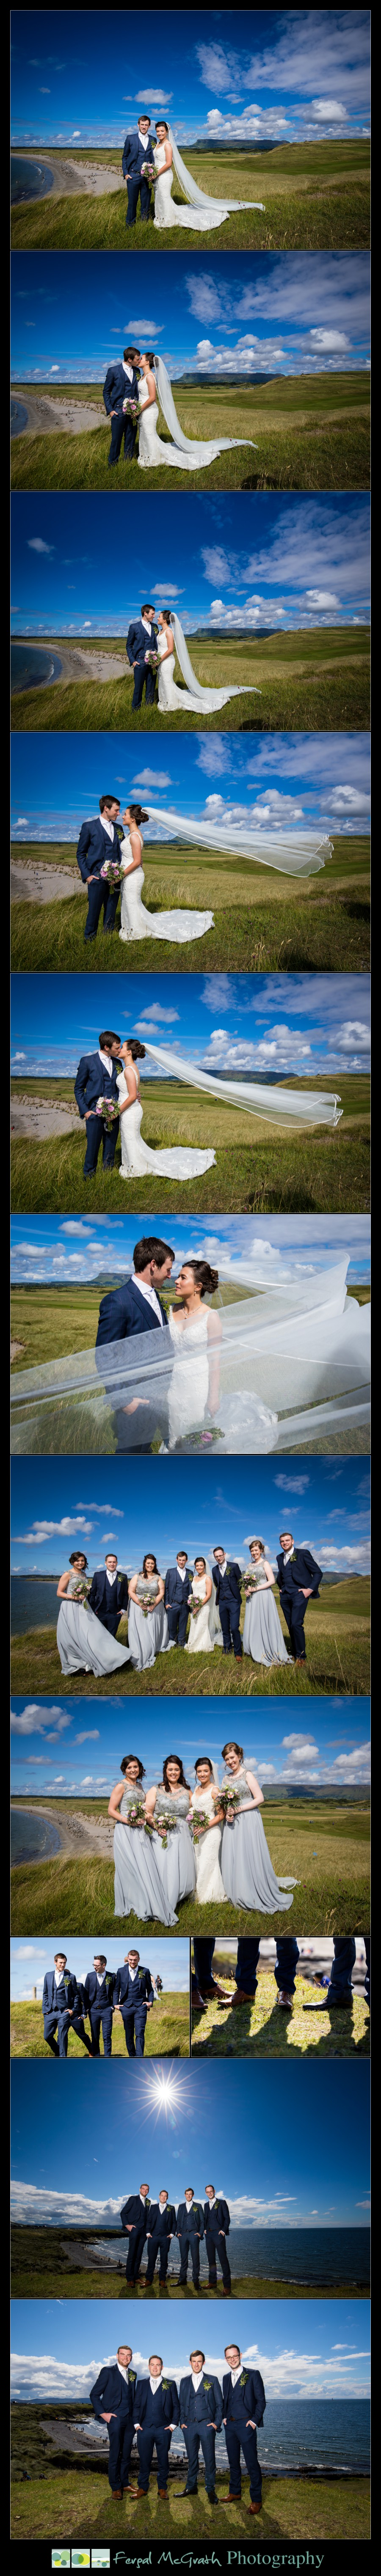 Clayton Hotel Sligo Wedding amazing wedding photos at rosses point sligo